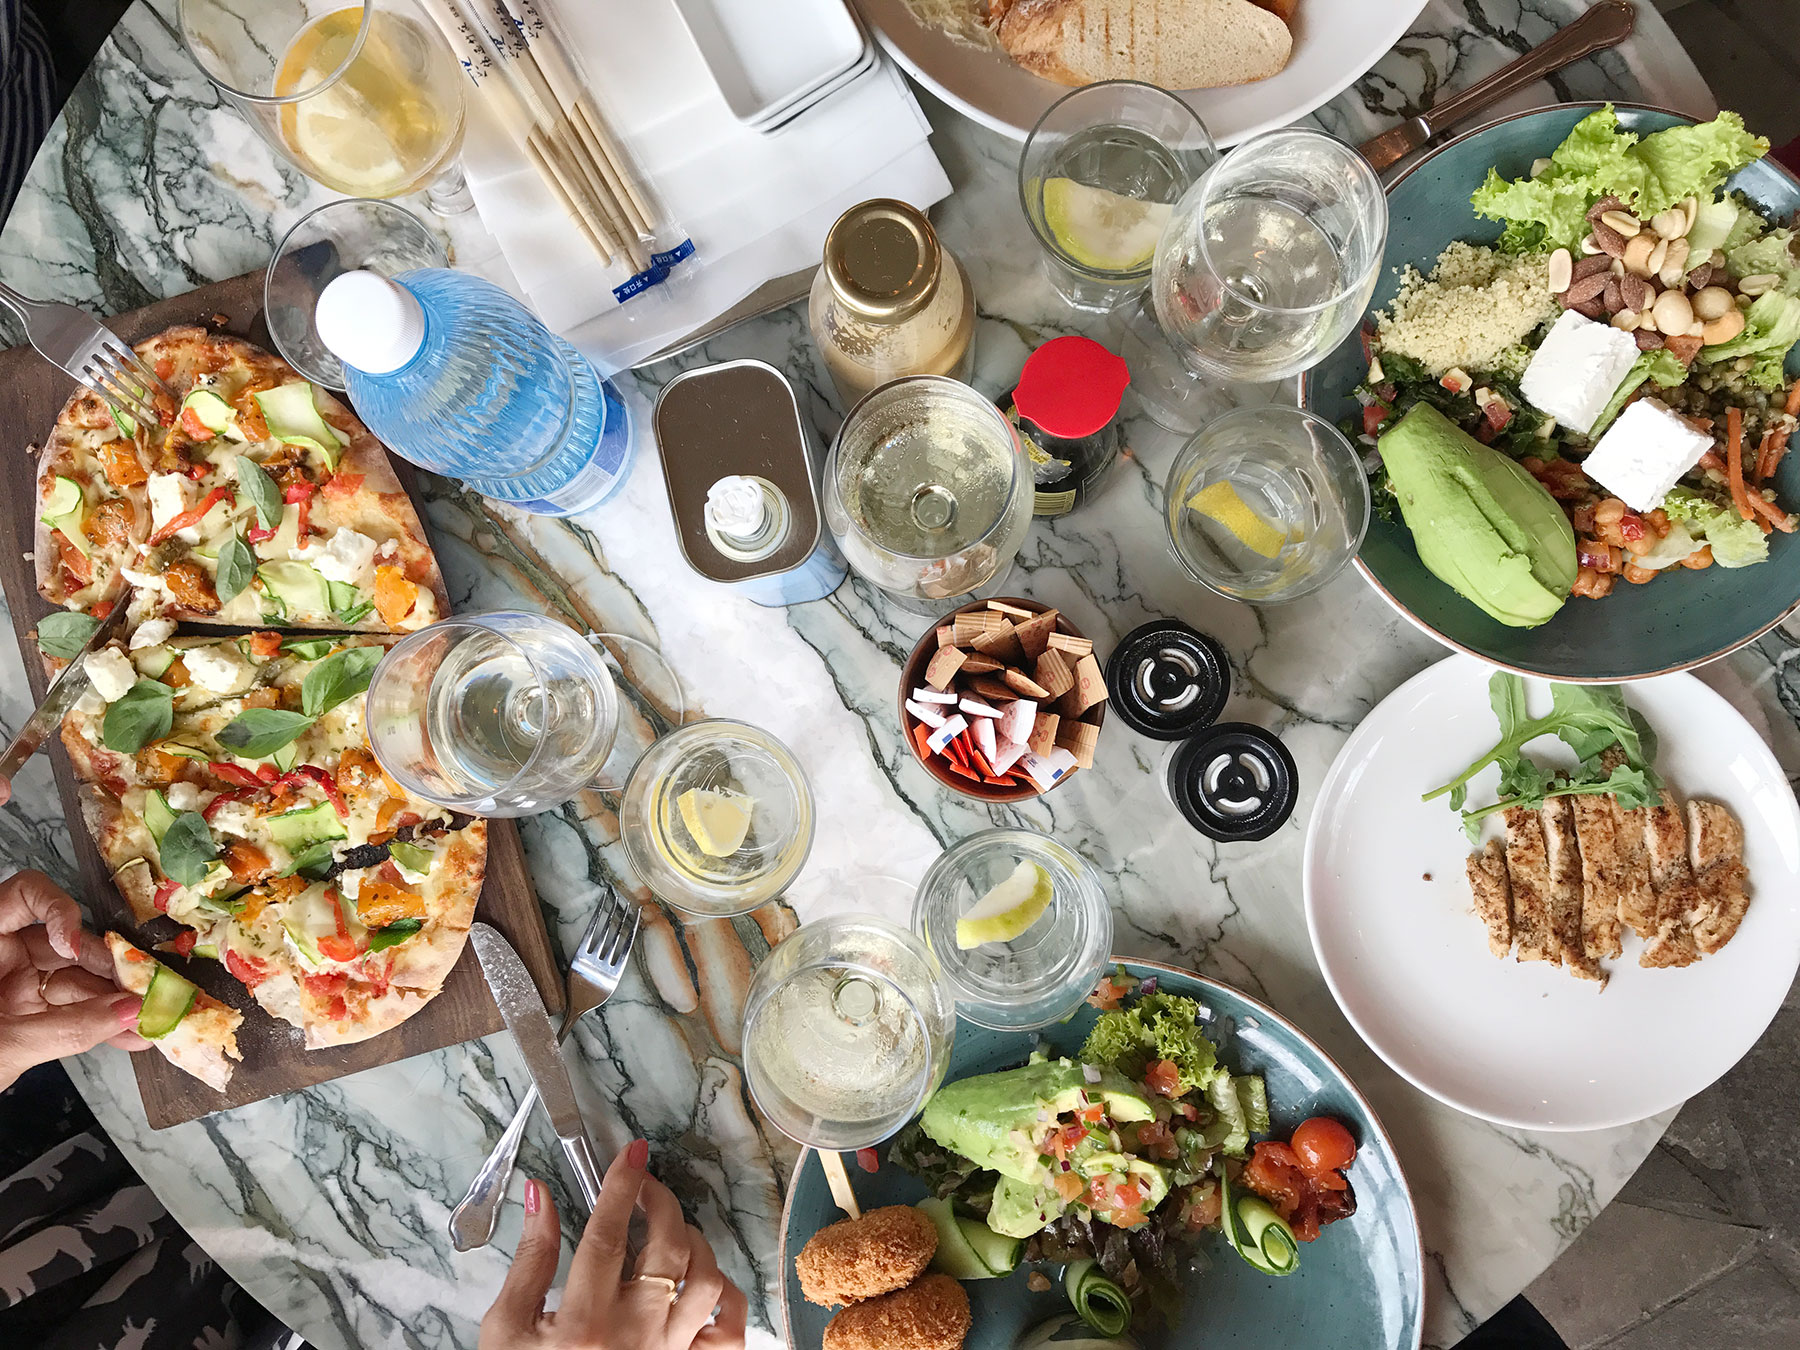 A sampling of the delicious food that we had when in South Africa. #capetown #southafrica #travel